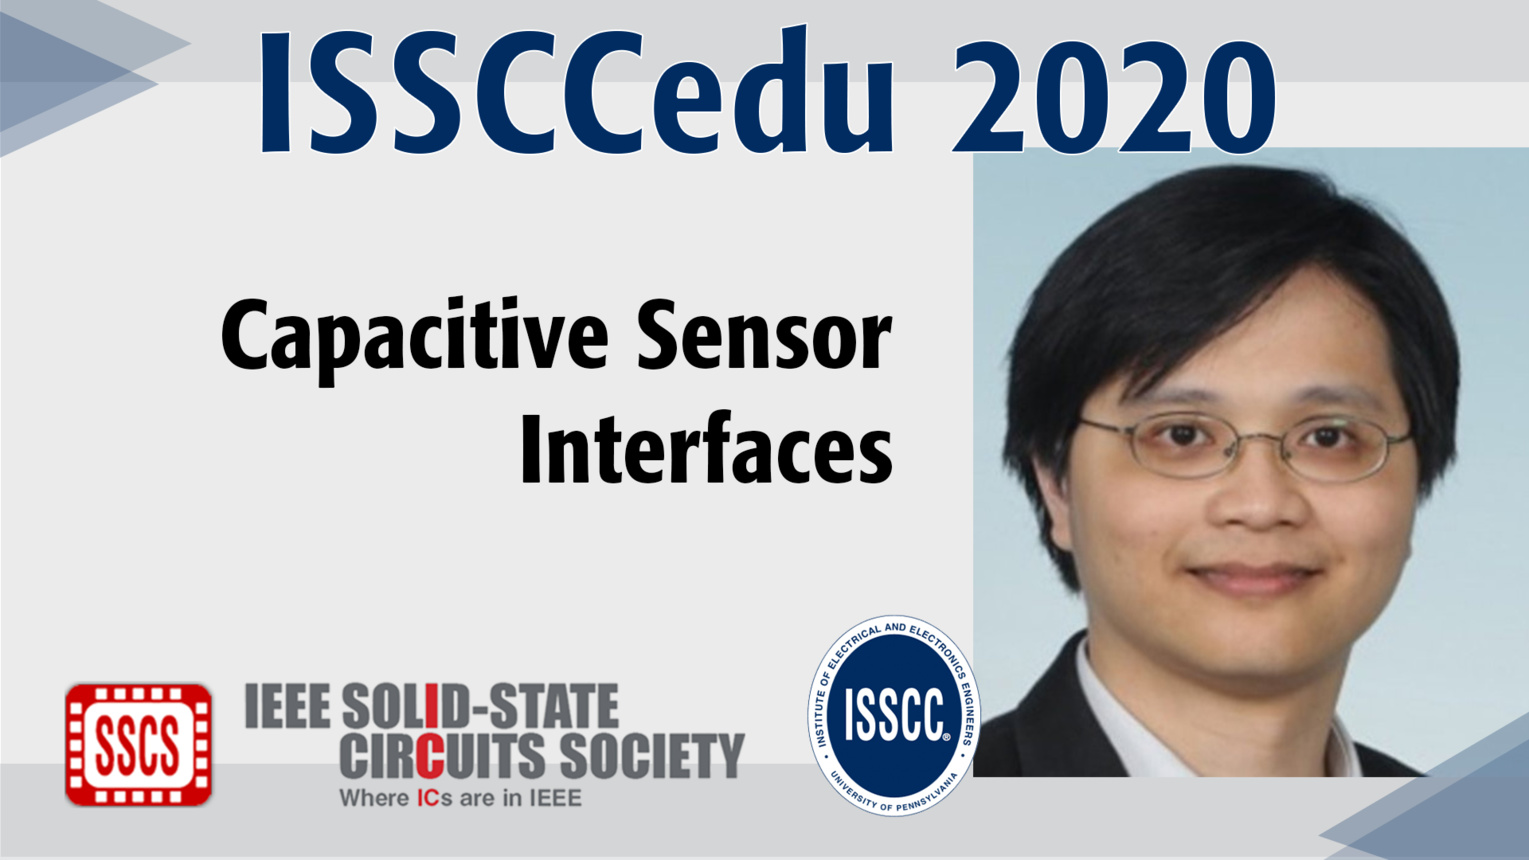 IEEE Solid-State Circuits Society